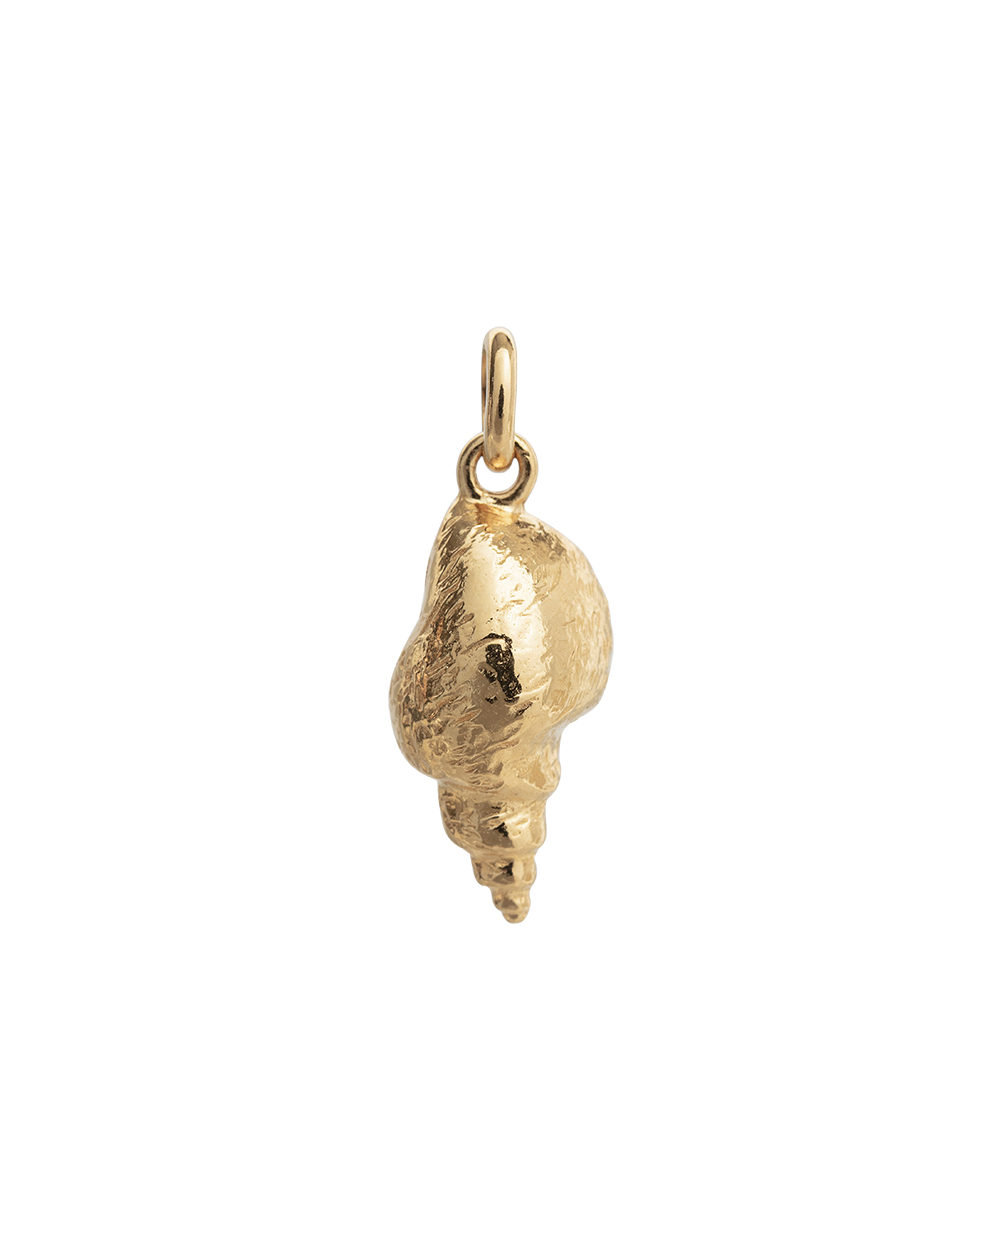 CONCH SHELL (18K-GOLD-VERMEIL)